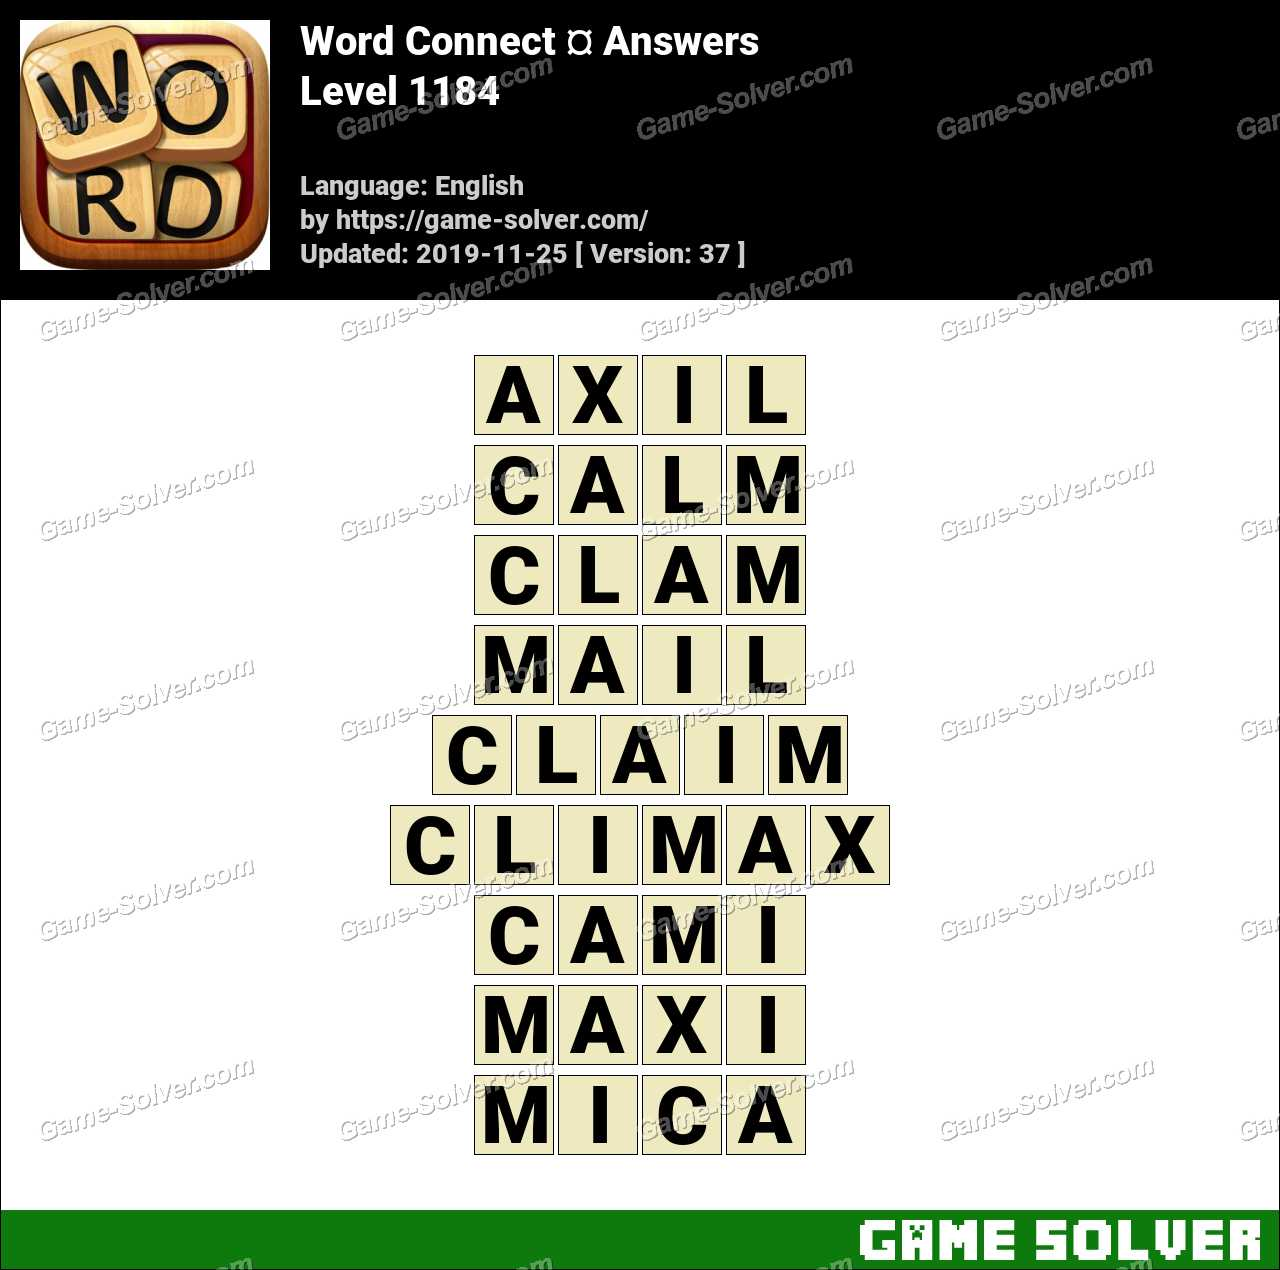 Word Connect Level 1184 Answers